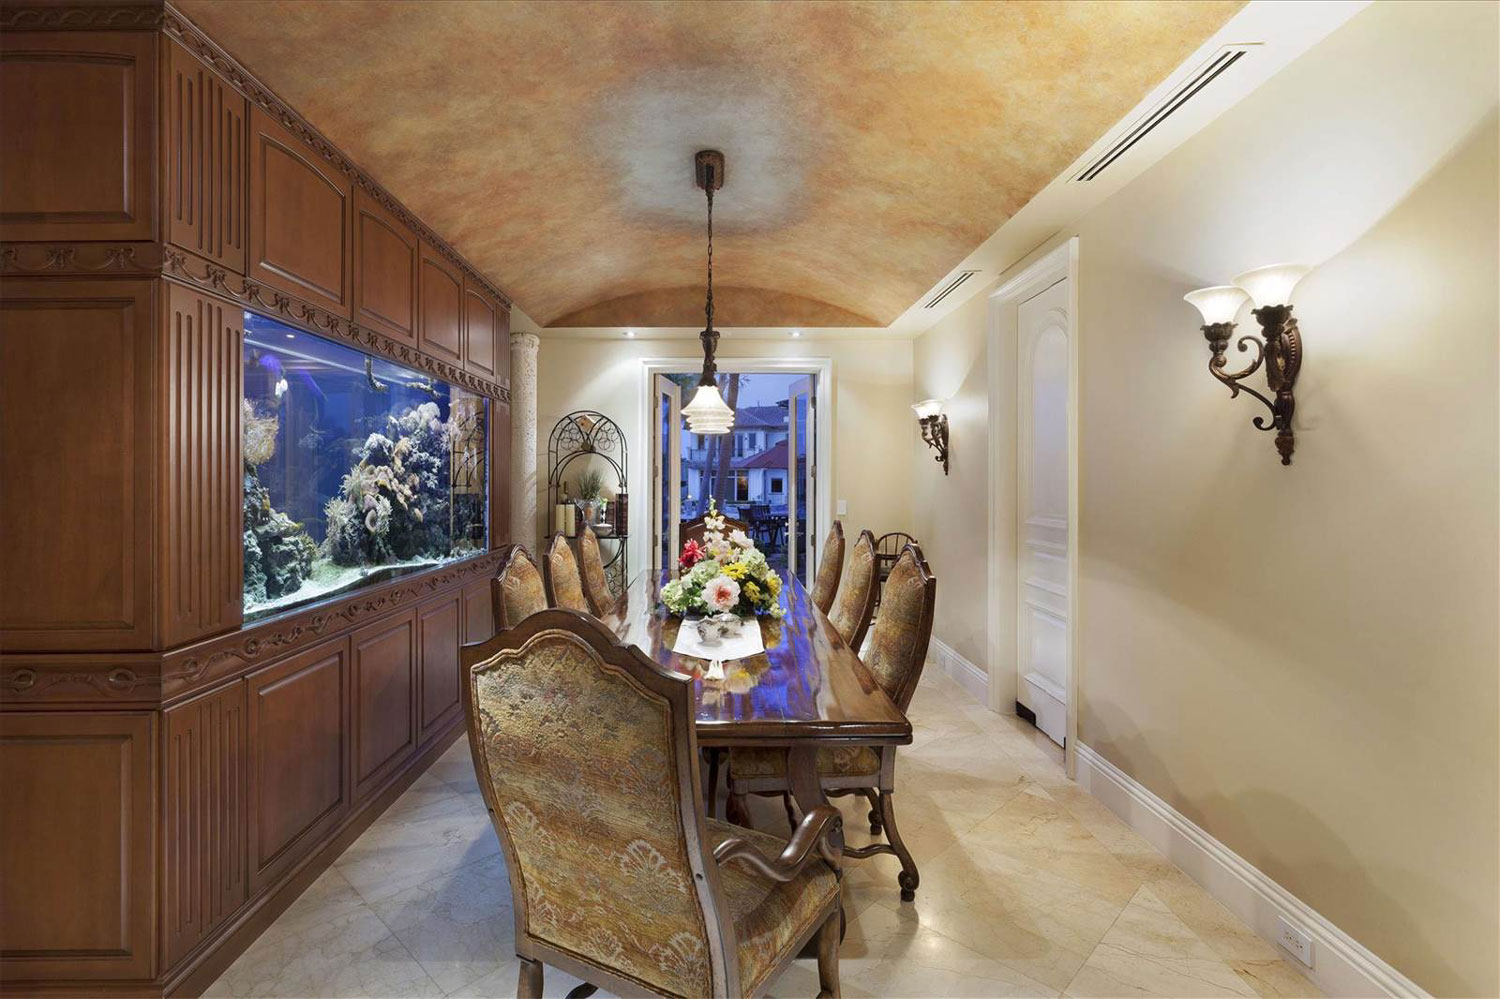 The aquarium can also be viewed from the formal dining room.